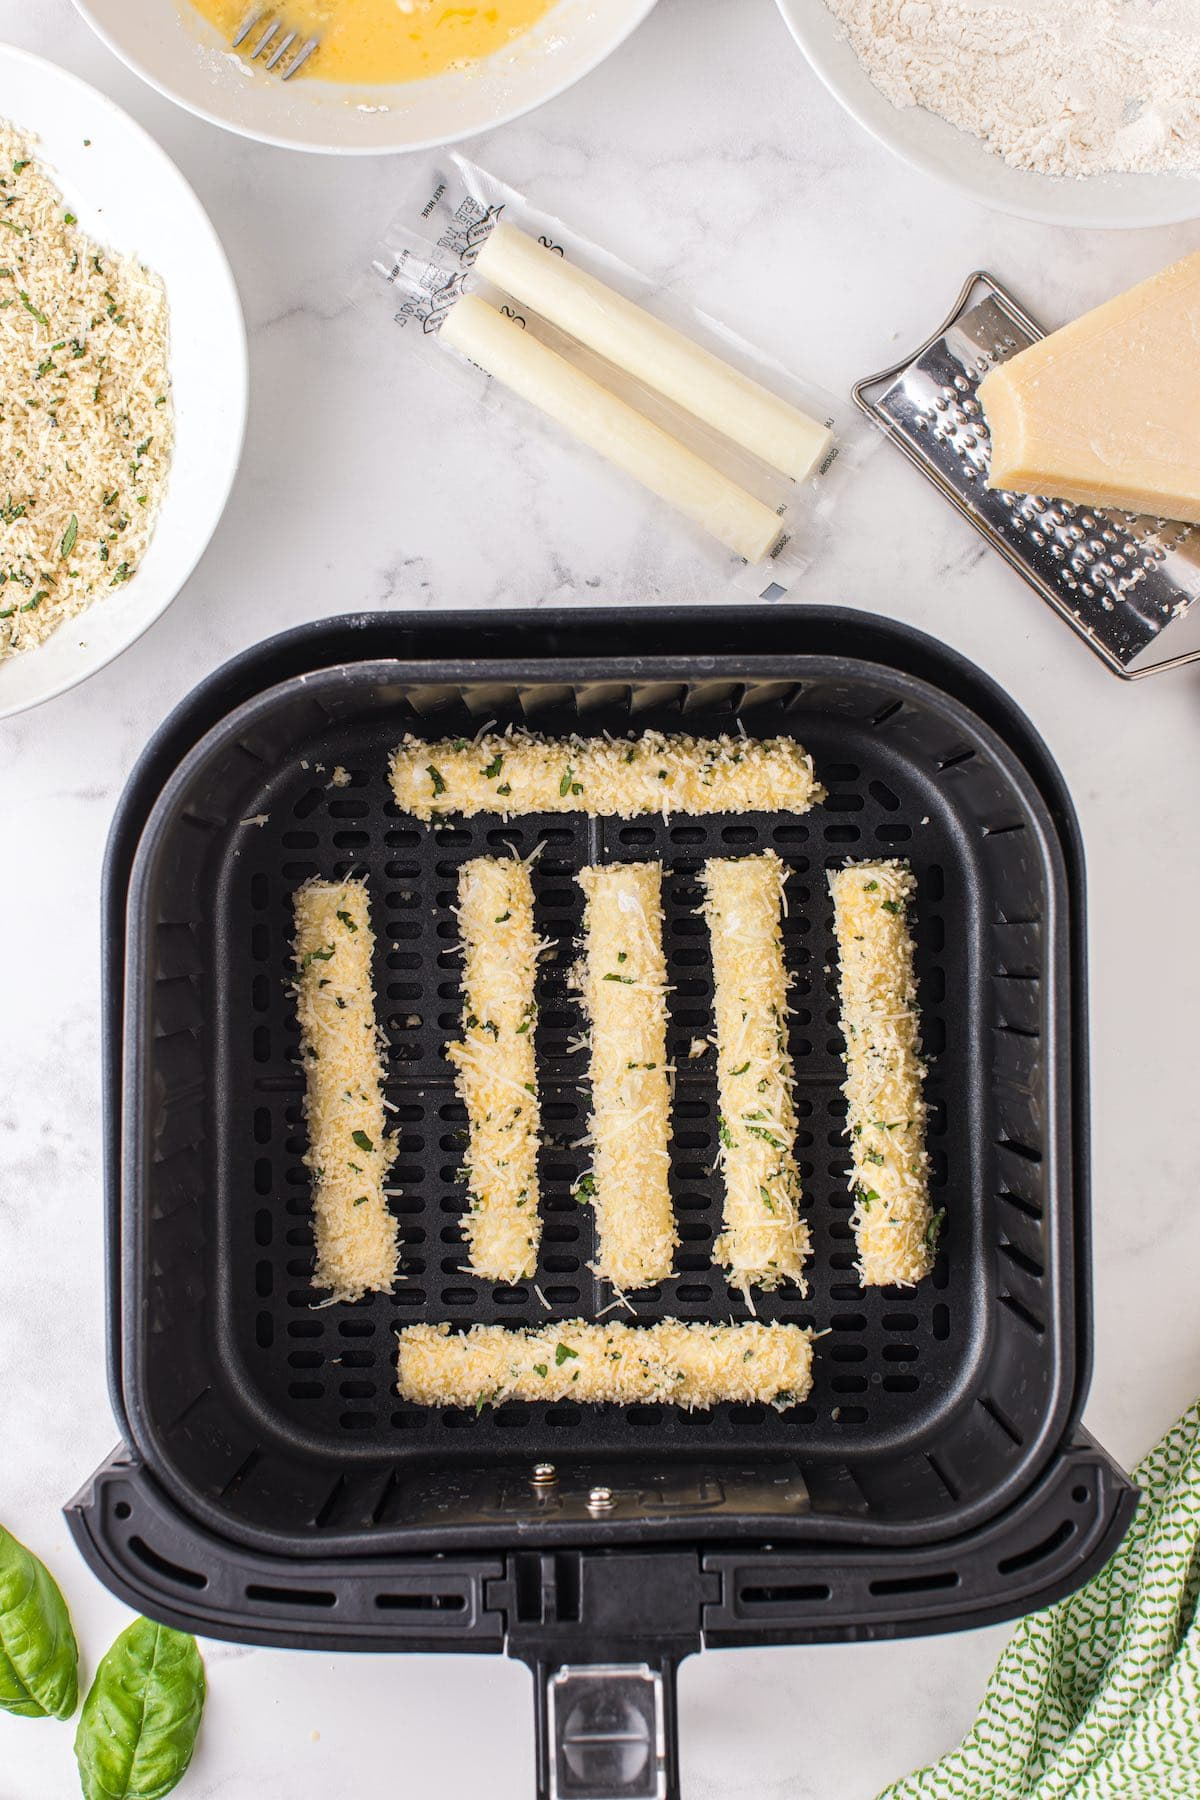 place the sticks in air fryer